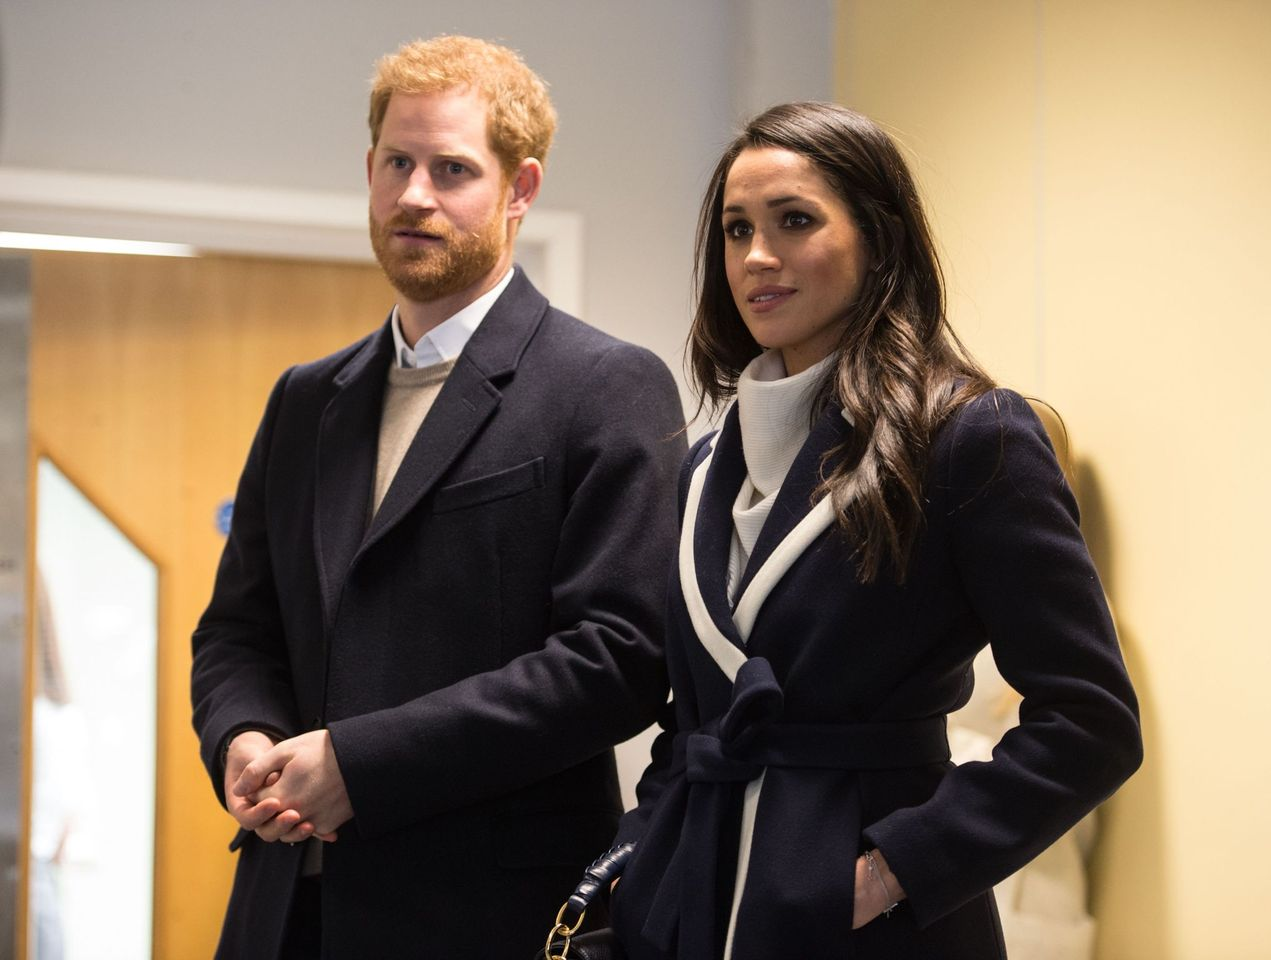 Britain's Prince Harry and his wife Meghan Markle visit Nechells Wellbeing Centre in Birmingham, central England on March 8, 2018.   Photo: Getty Images